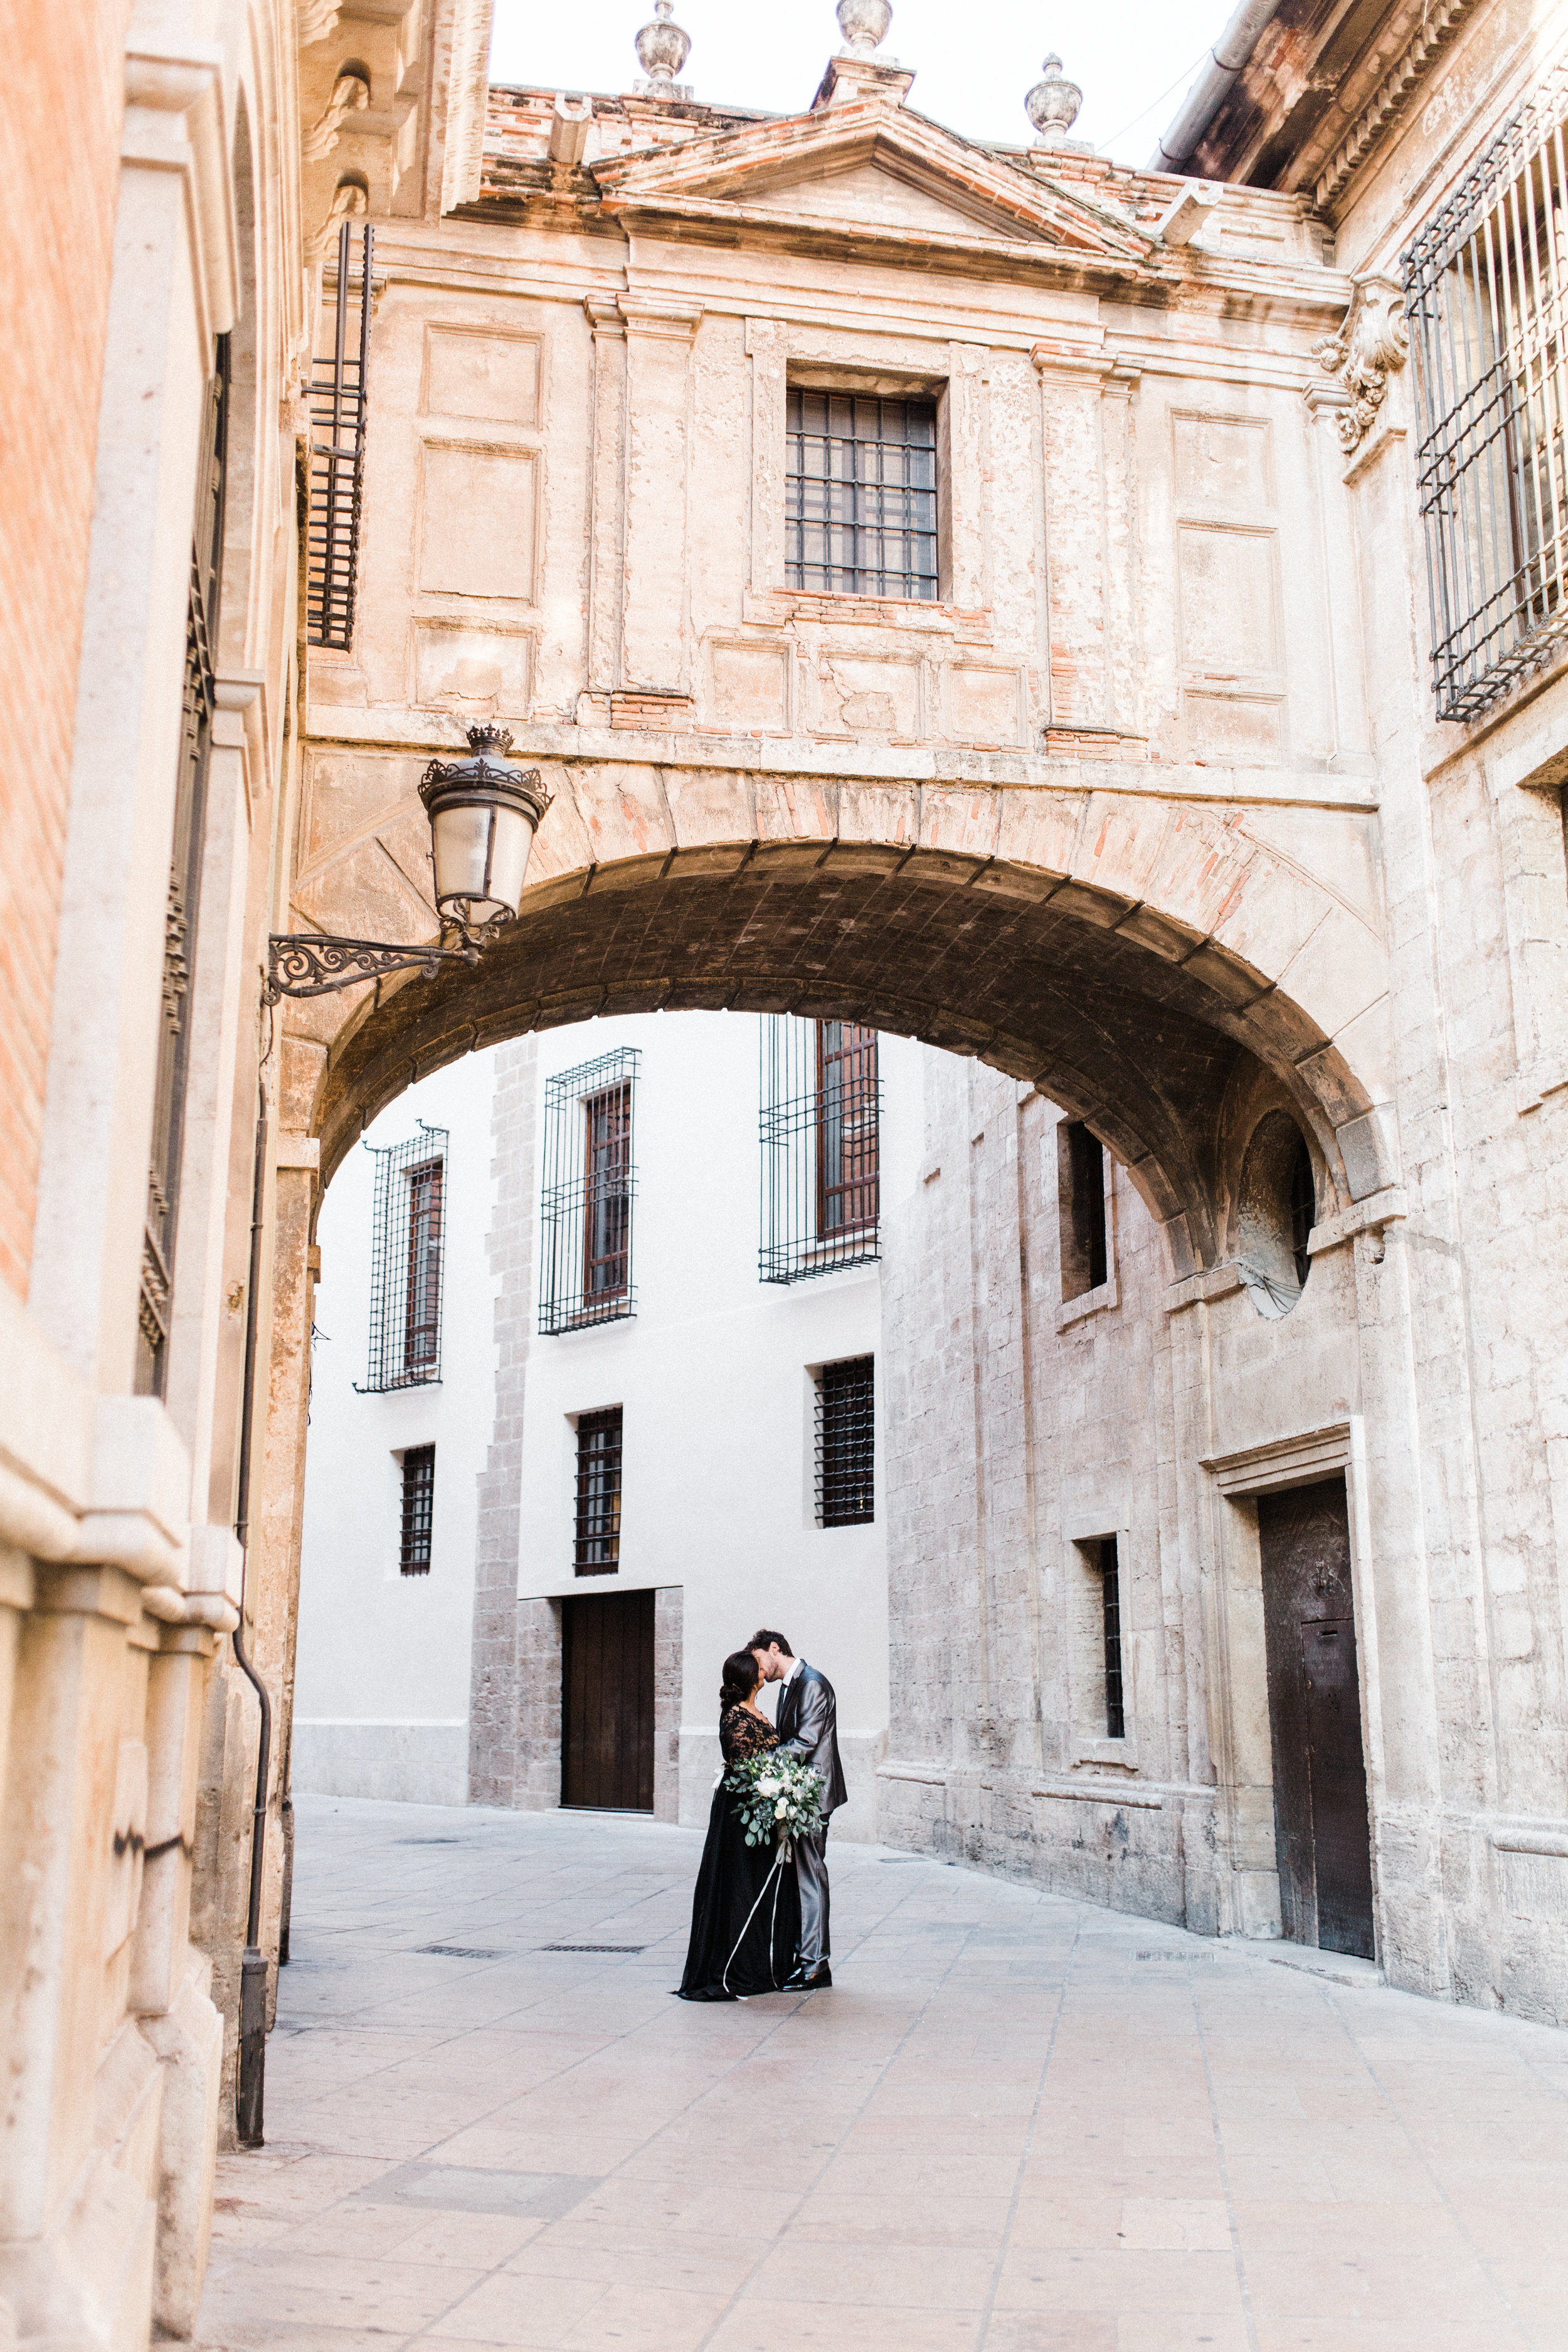 Four Corners Photography Gerson and Jenny Valencia Spain-24.jpg